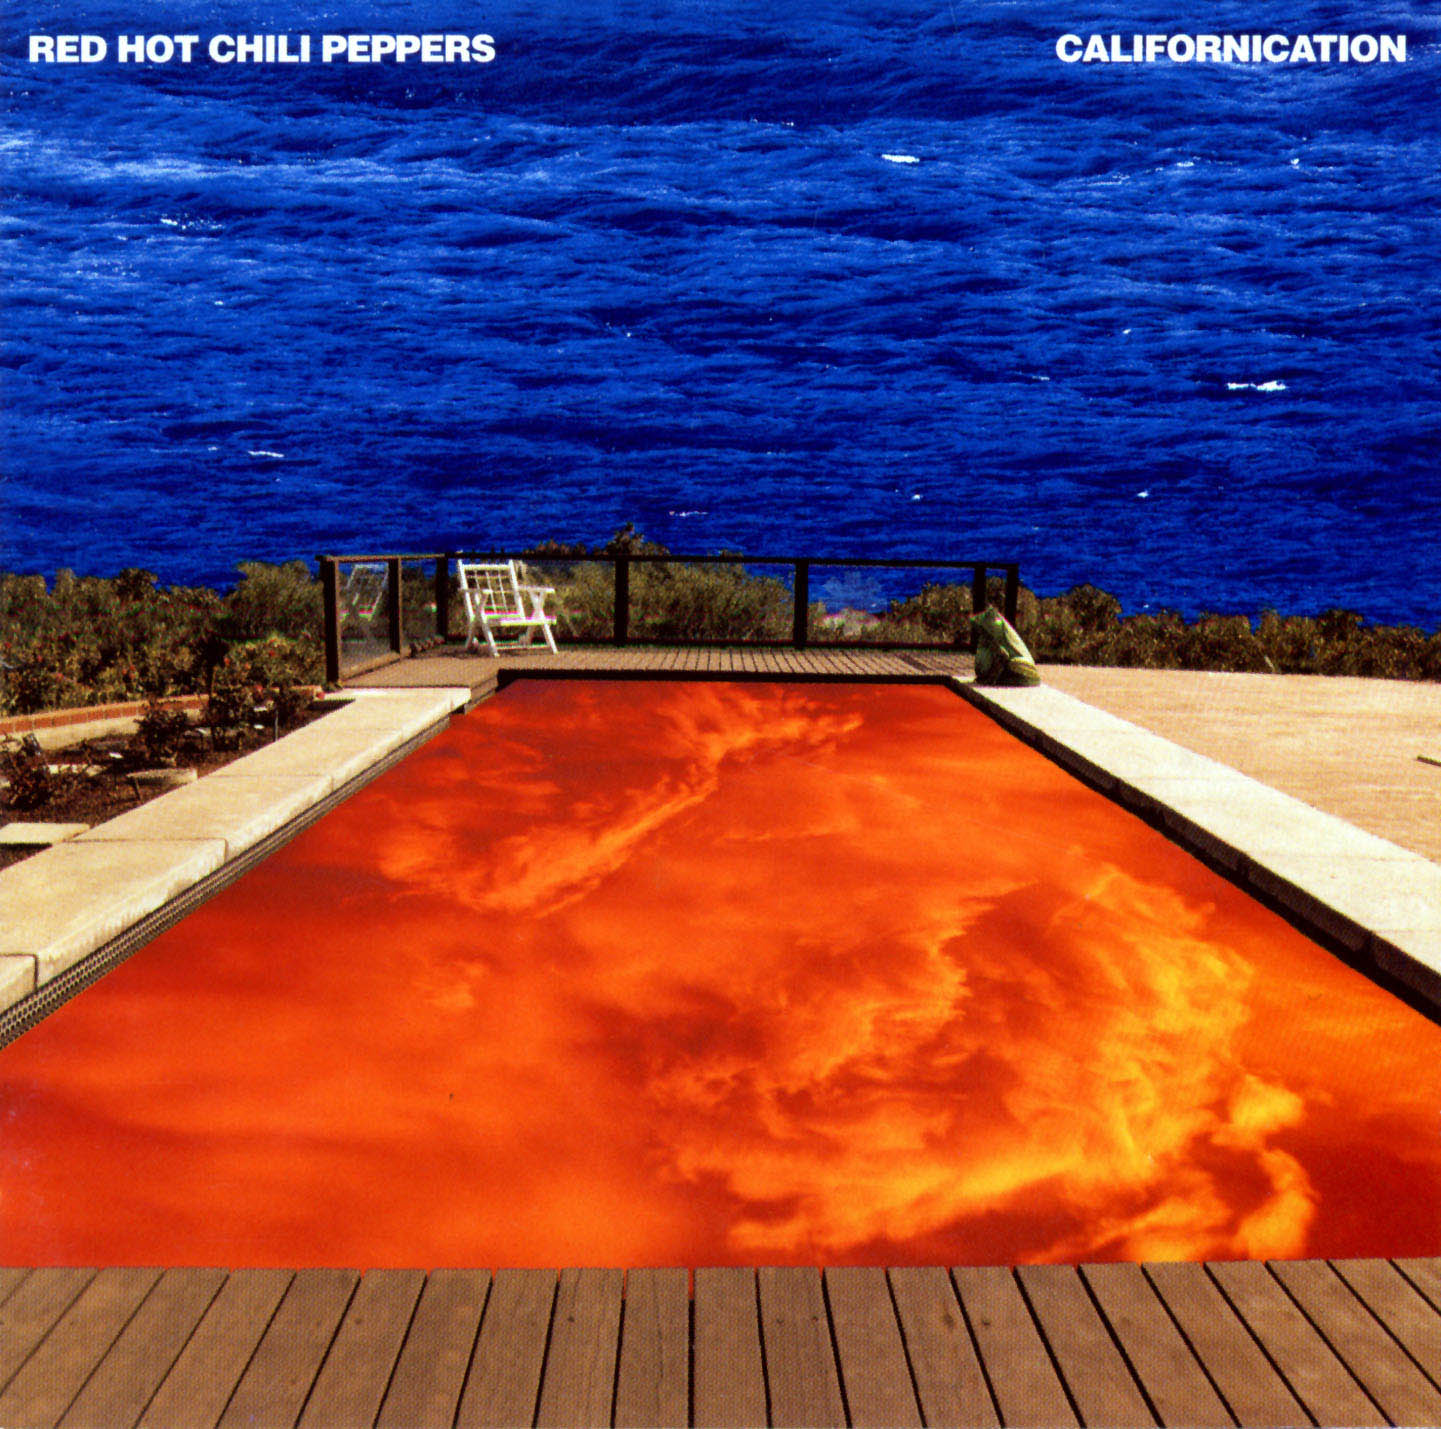 red hot chili peppers californication mp3 download 320kbps